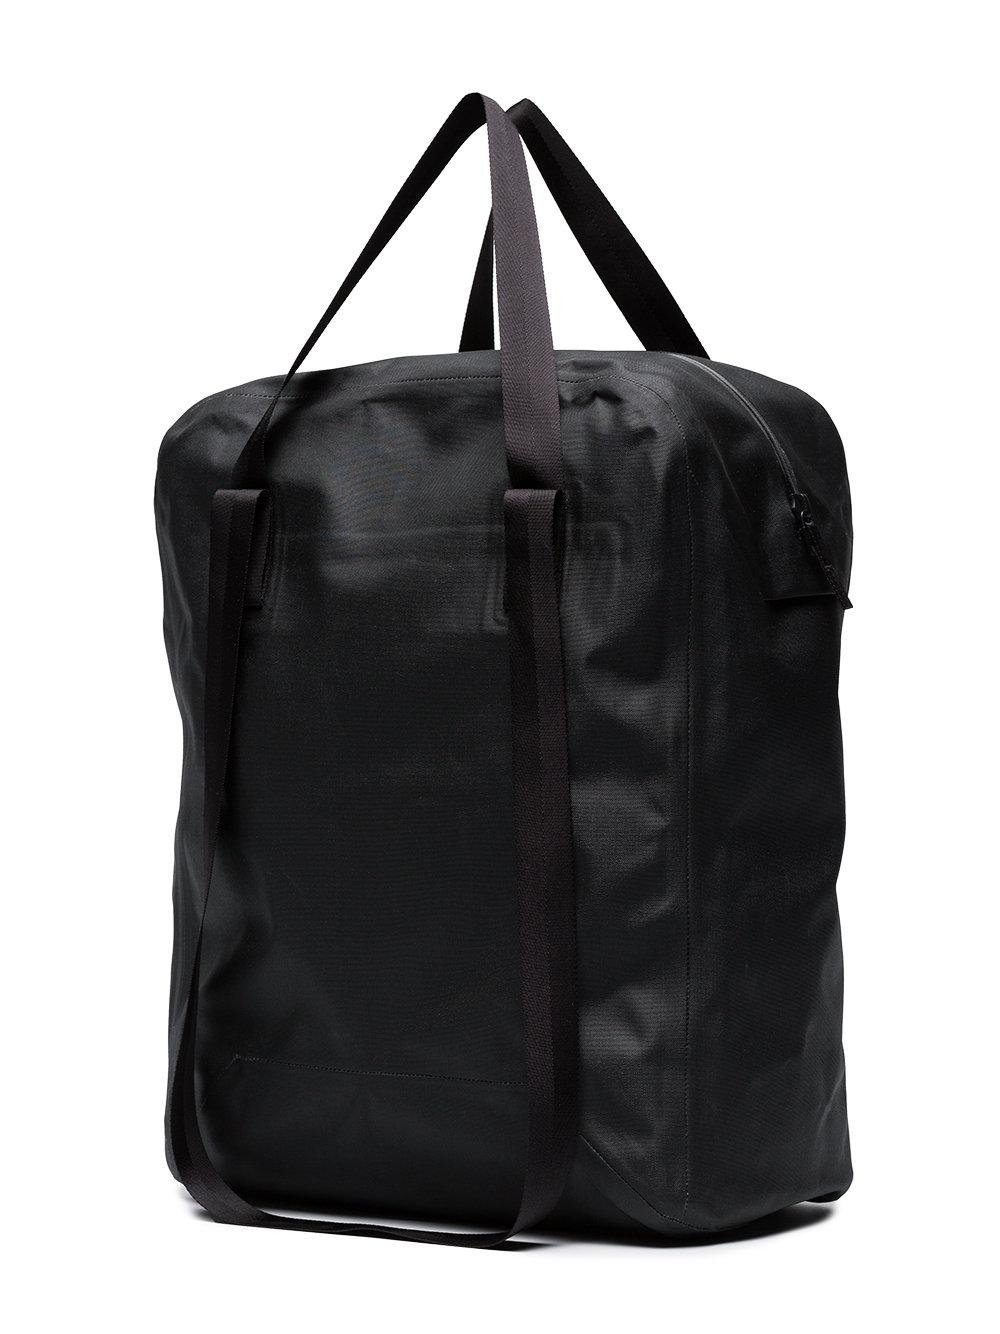 Arc'teryx Seque Shell Tote Bag in Black for Men